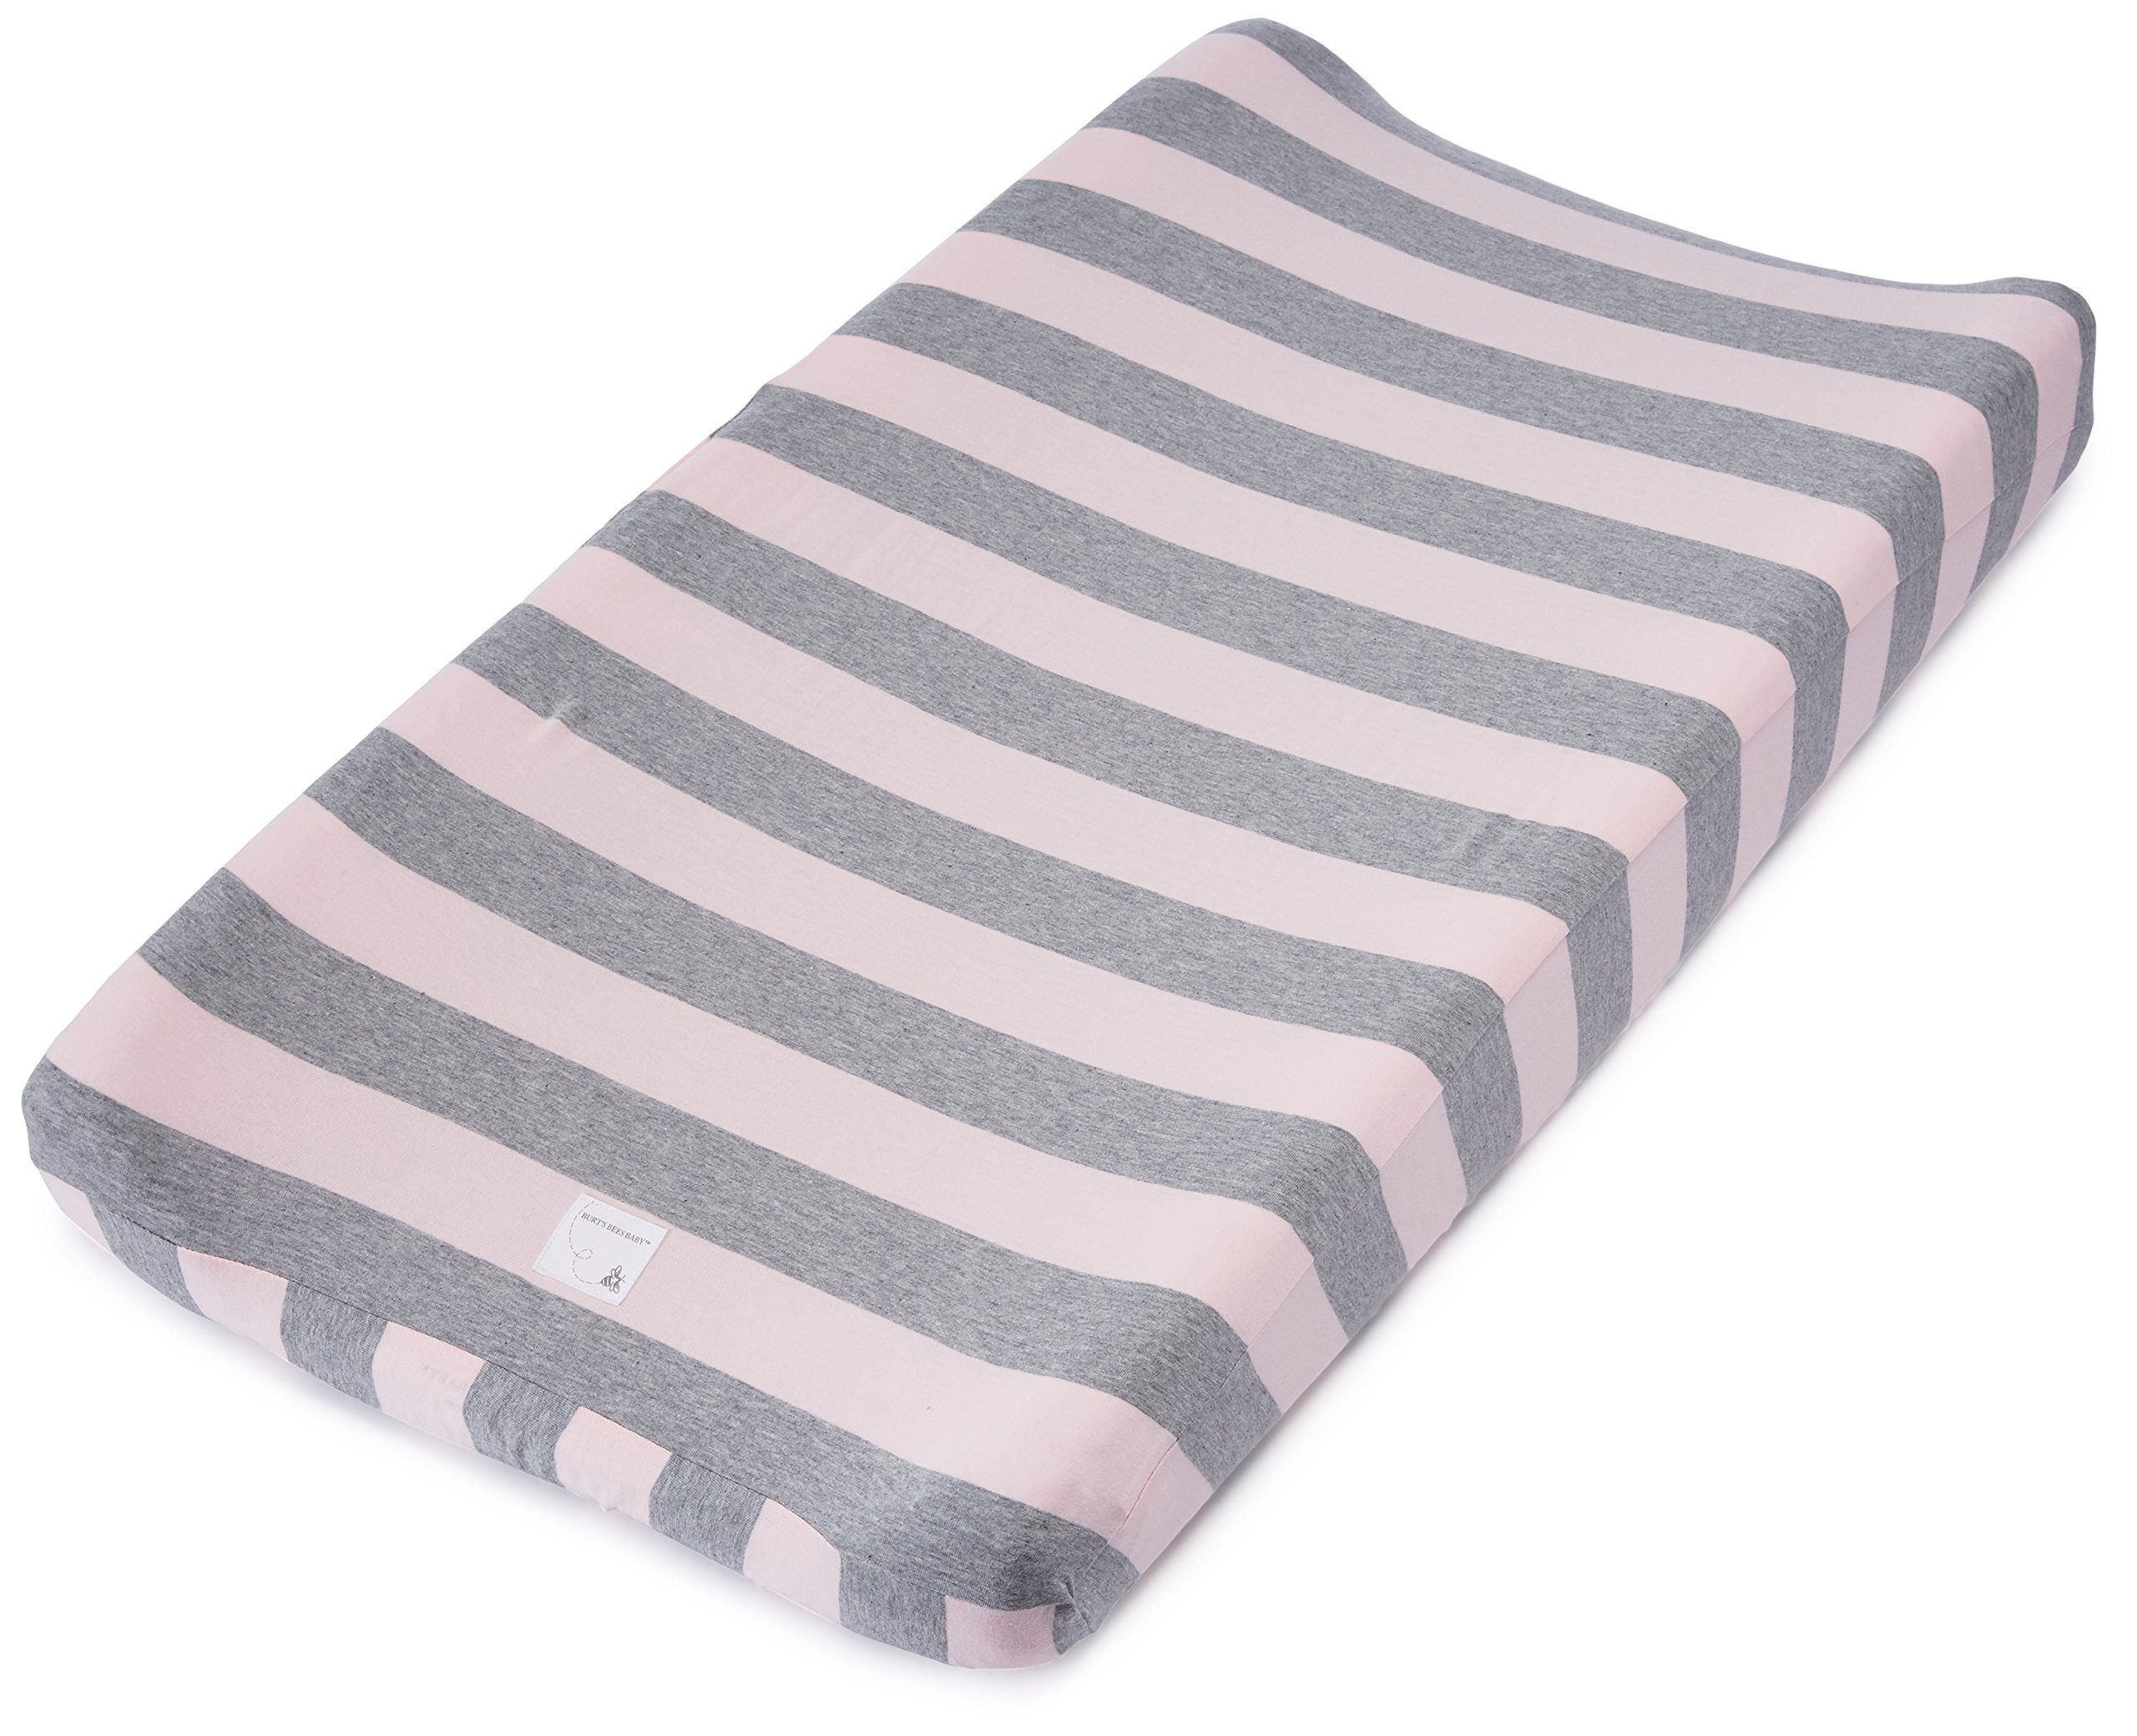 Burt's Bees Baby - Changing Pad Cover, 100% Organic Cotton Changing Pad Liner for Standard 16'' x 32'' Baby Changing Mats (Blossom Bold Stripes)